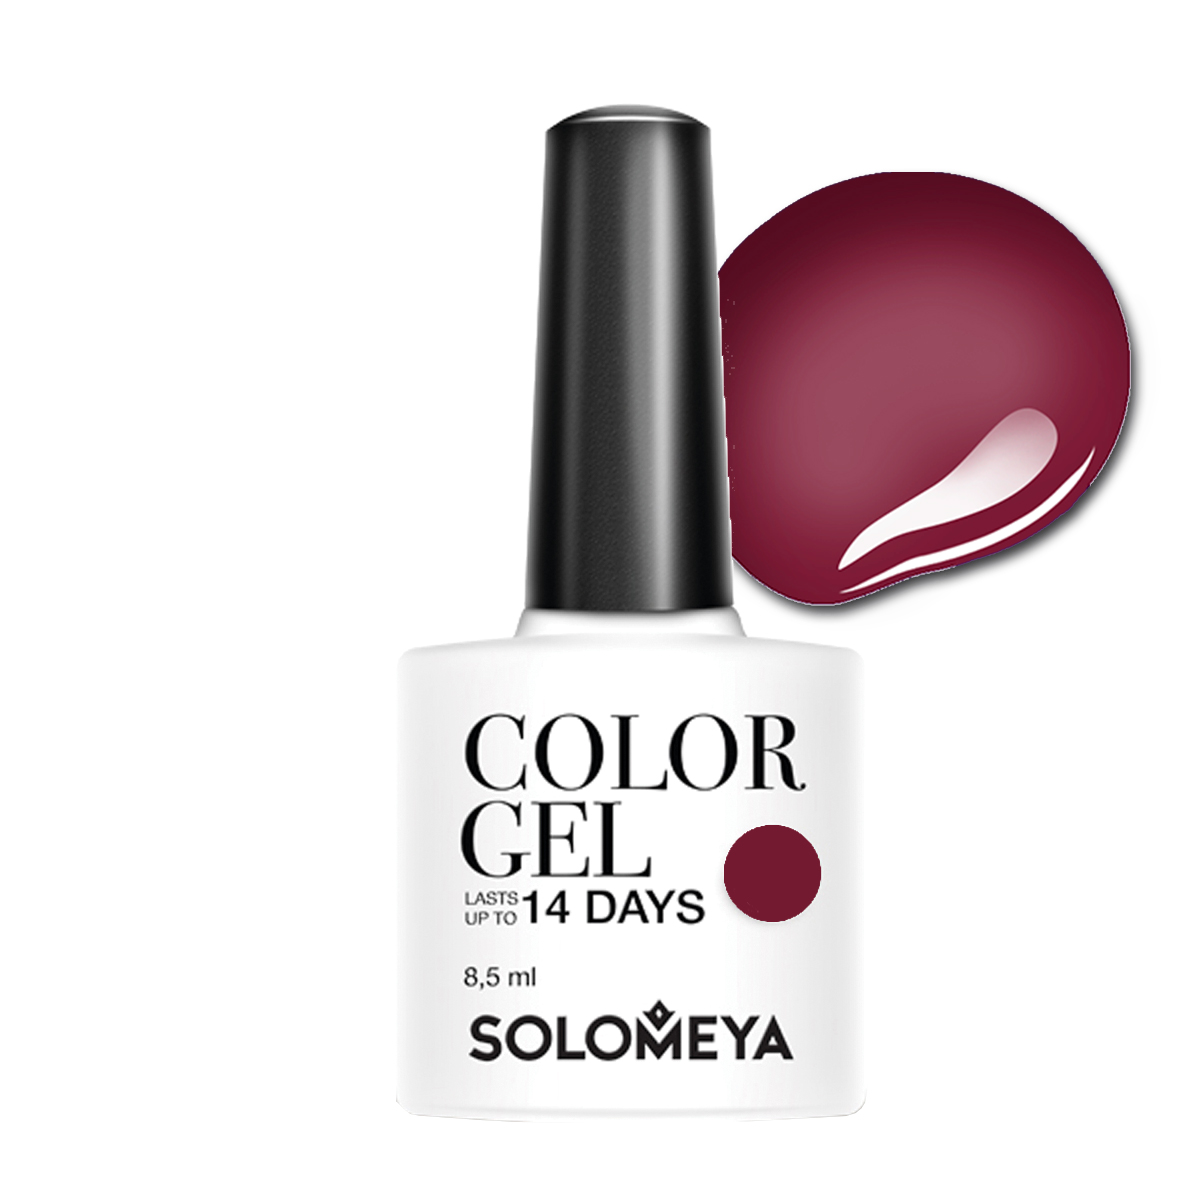 SOLOMEYA Гель-лак для ногтей SCG087 Виктория / Color Gel Victoria 8,5 мл - Гель-лаки